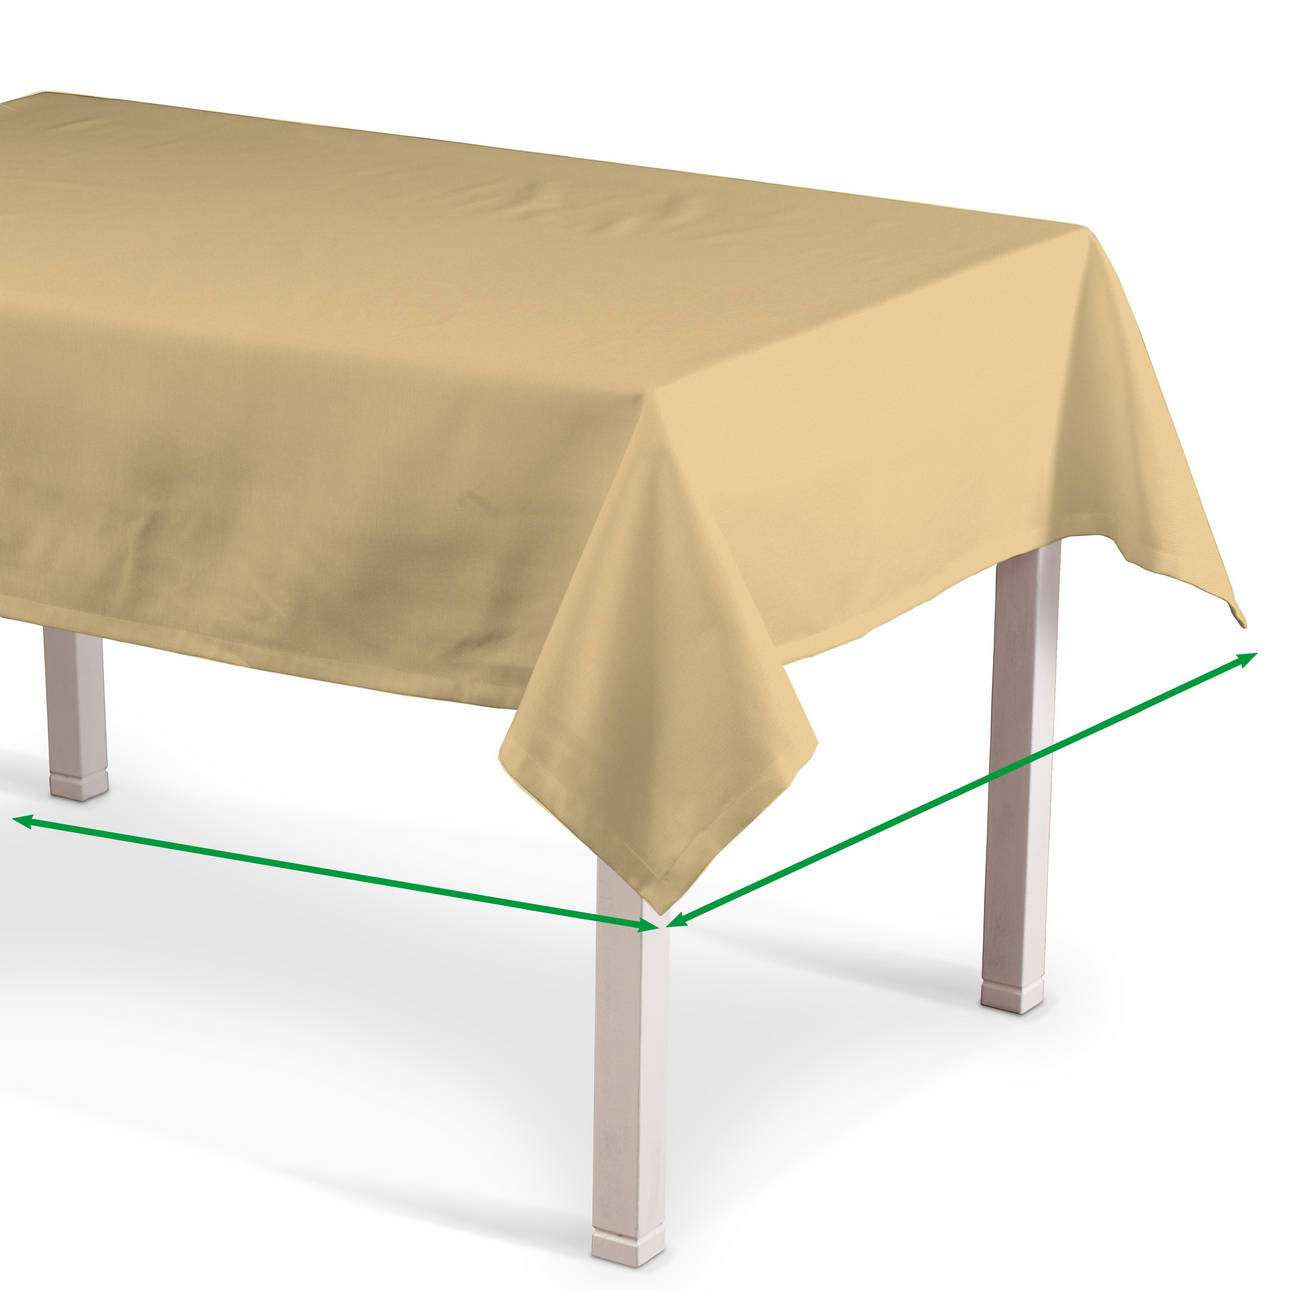 Rectangular tablecloth in collection Christmas, fabric: 141-75